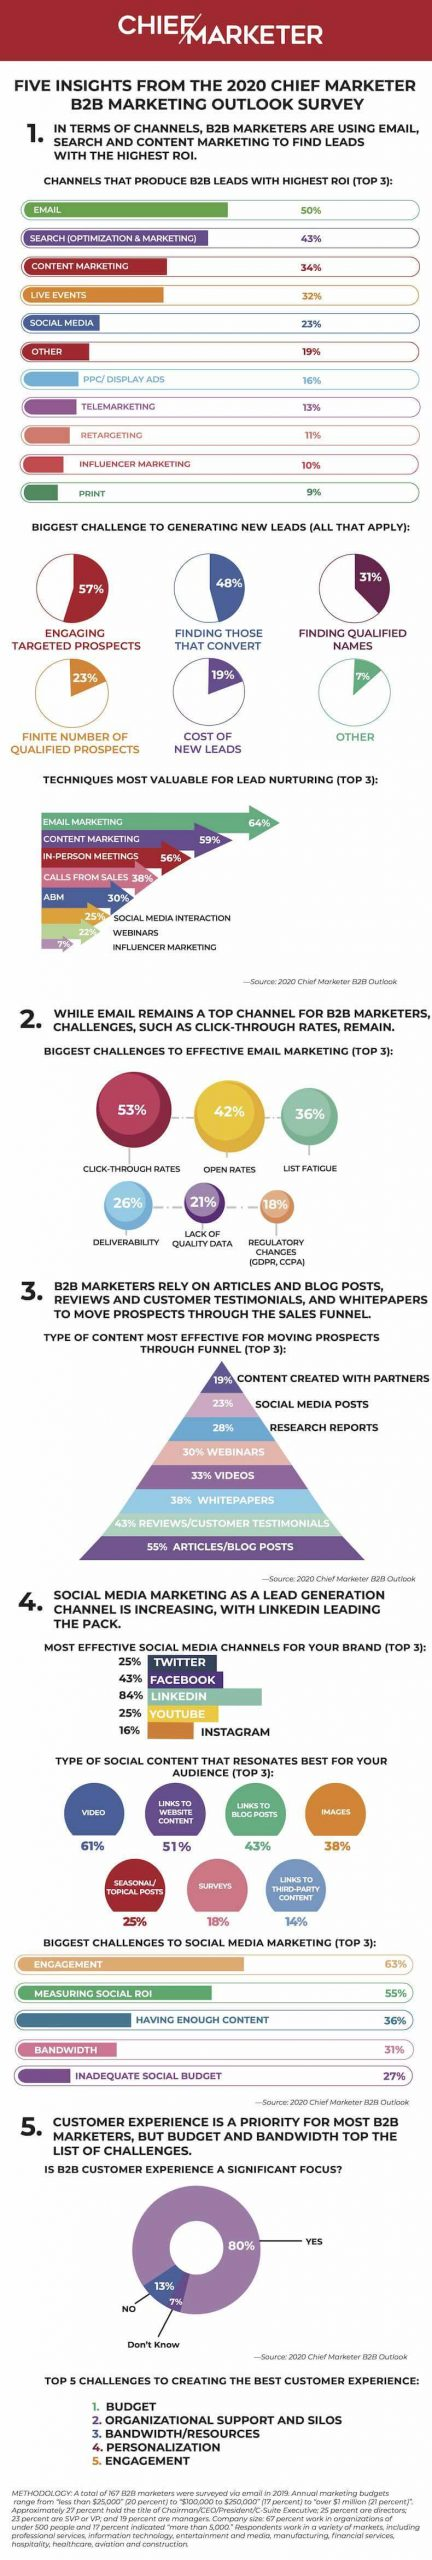 infographic BB marketing outlook survey